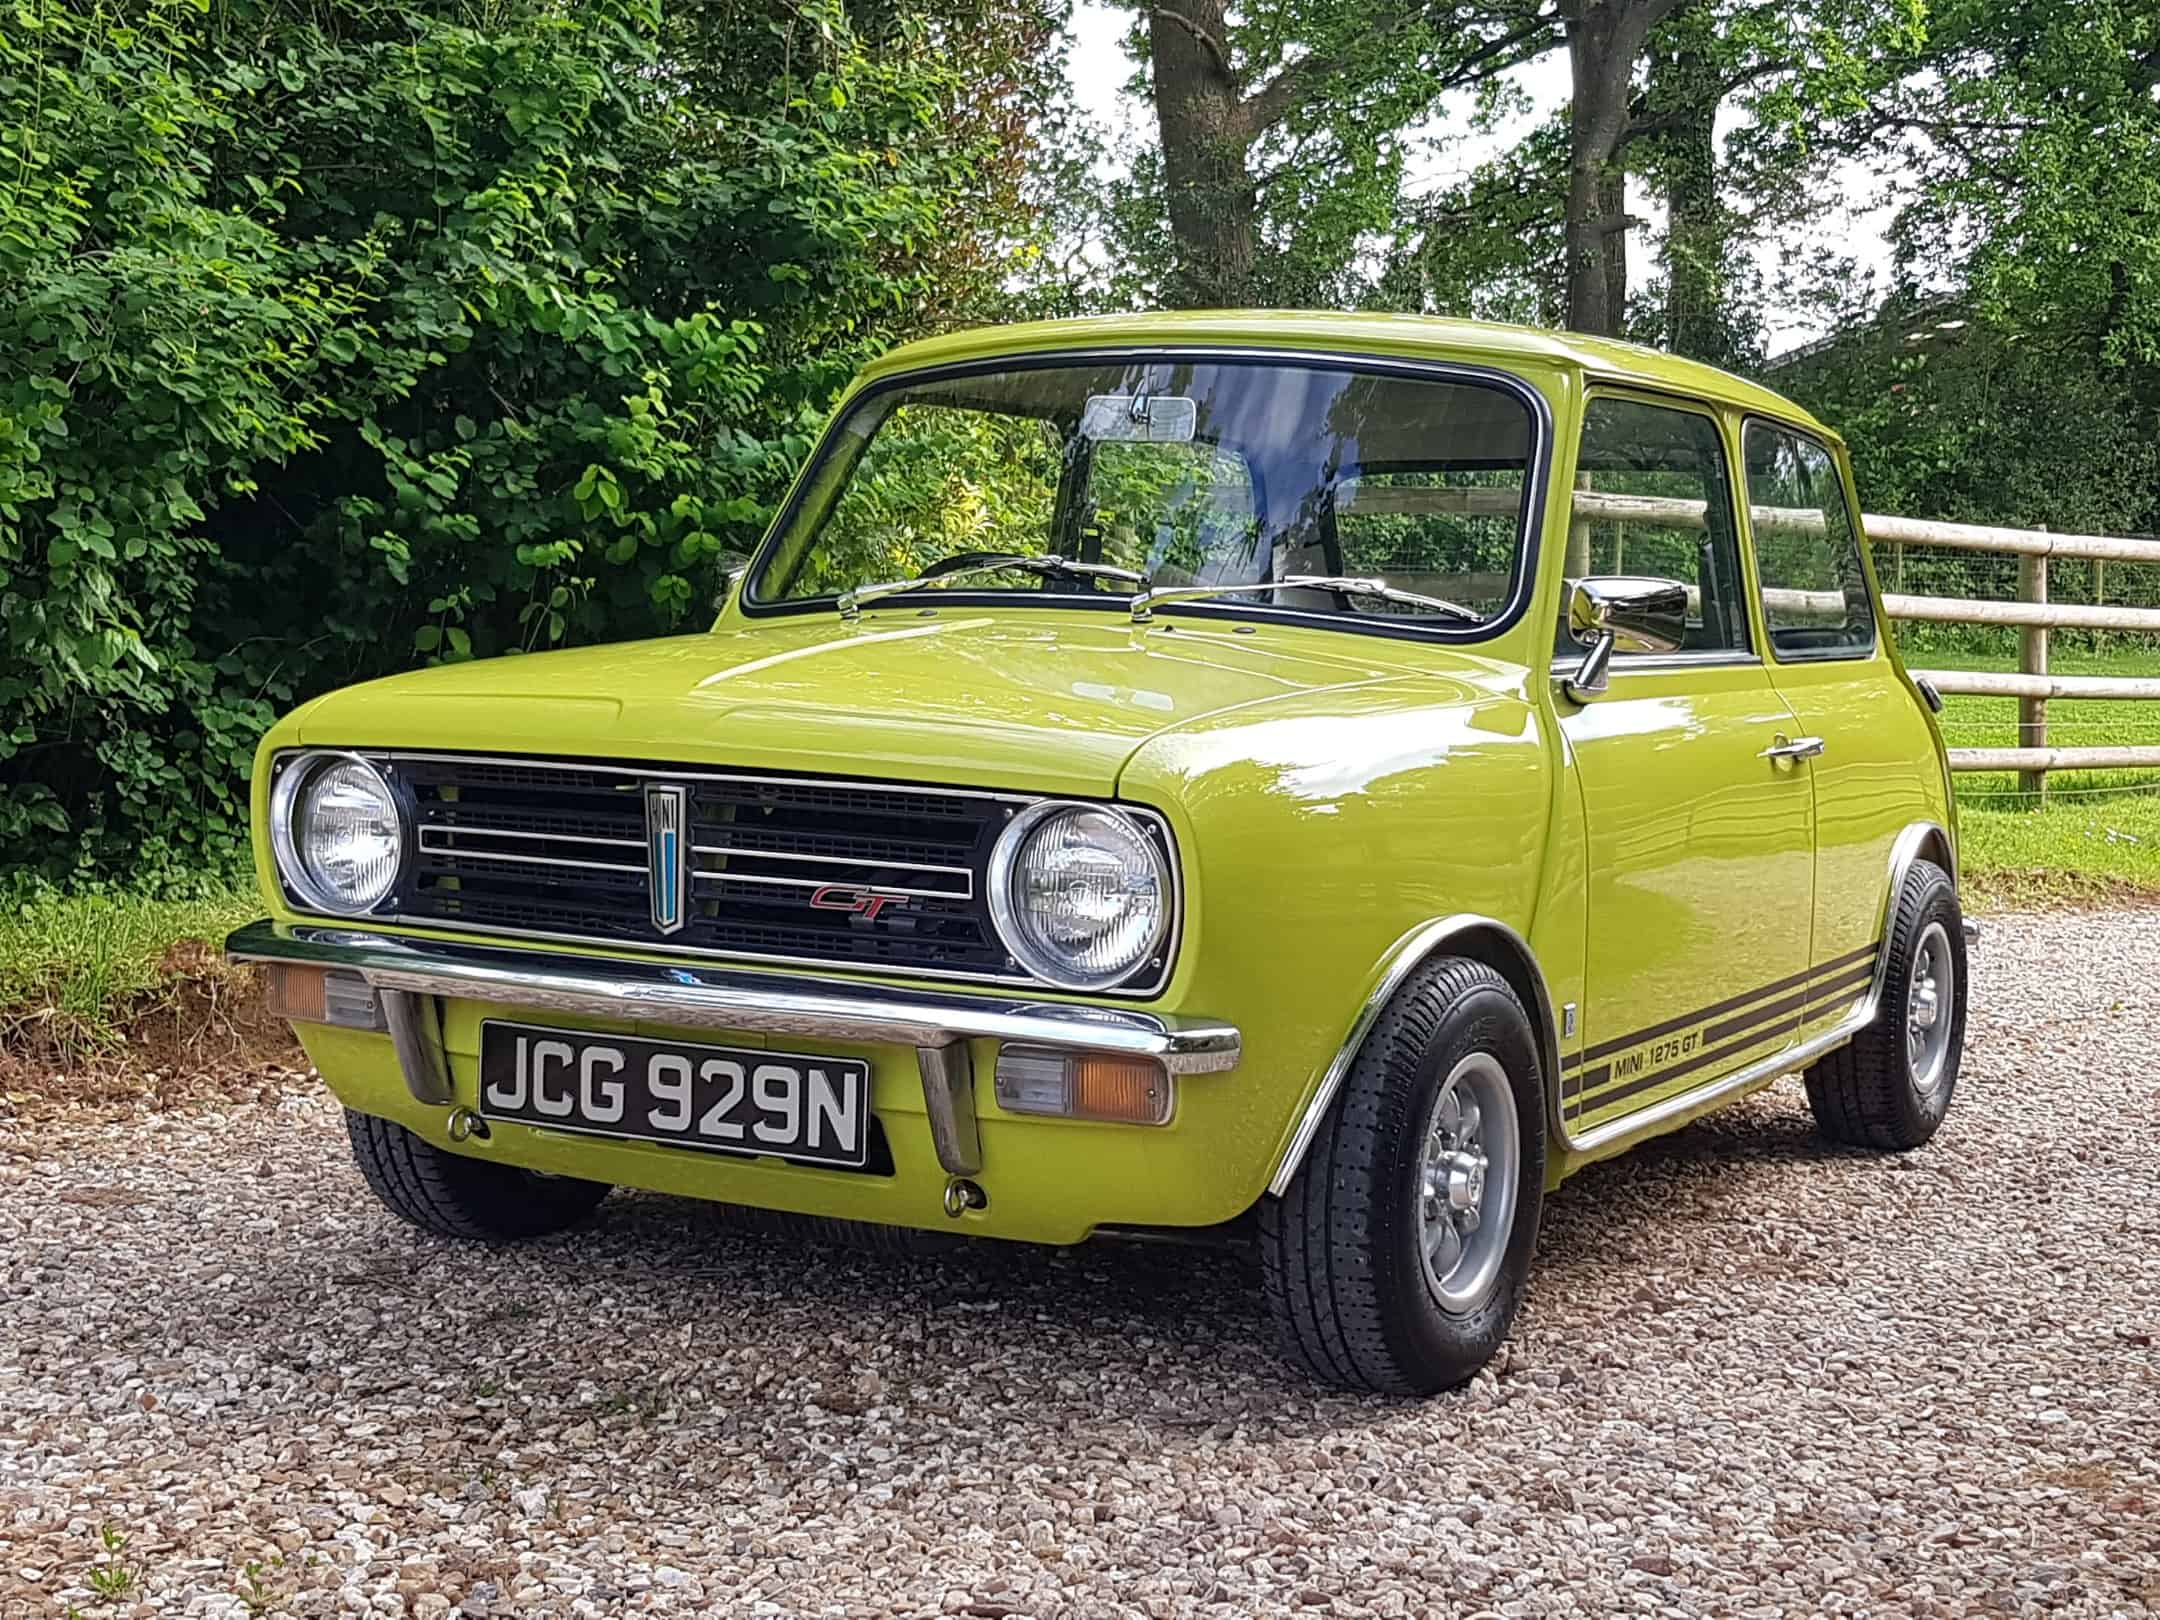 ** NOW SOLD ** Outstanding 1975 Morris Mini 1275 GT In Rare Citron Yellow!